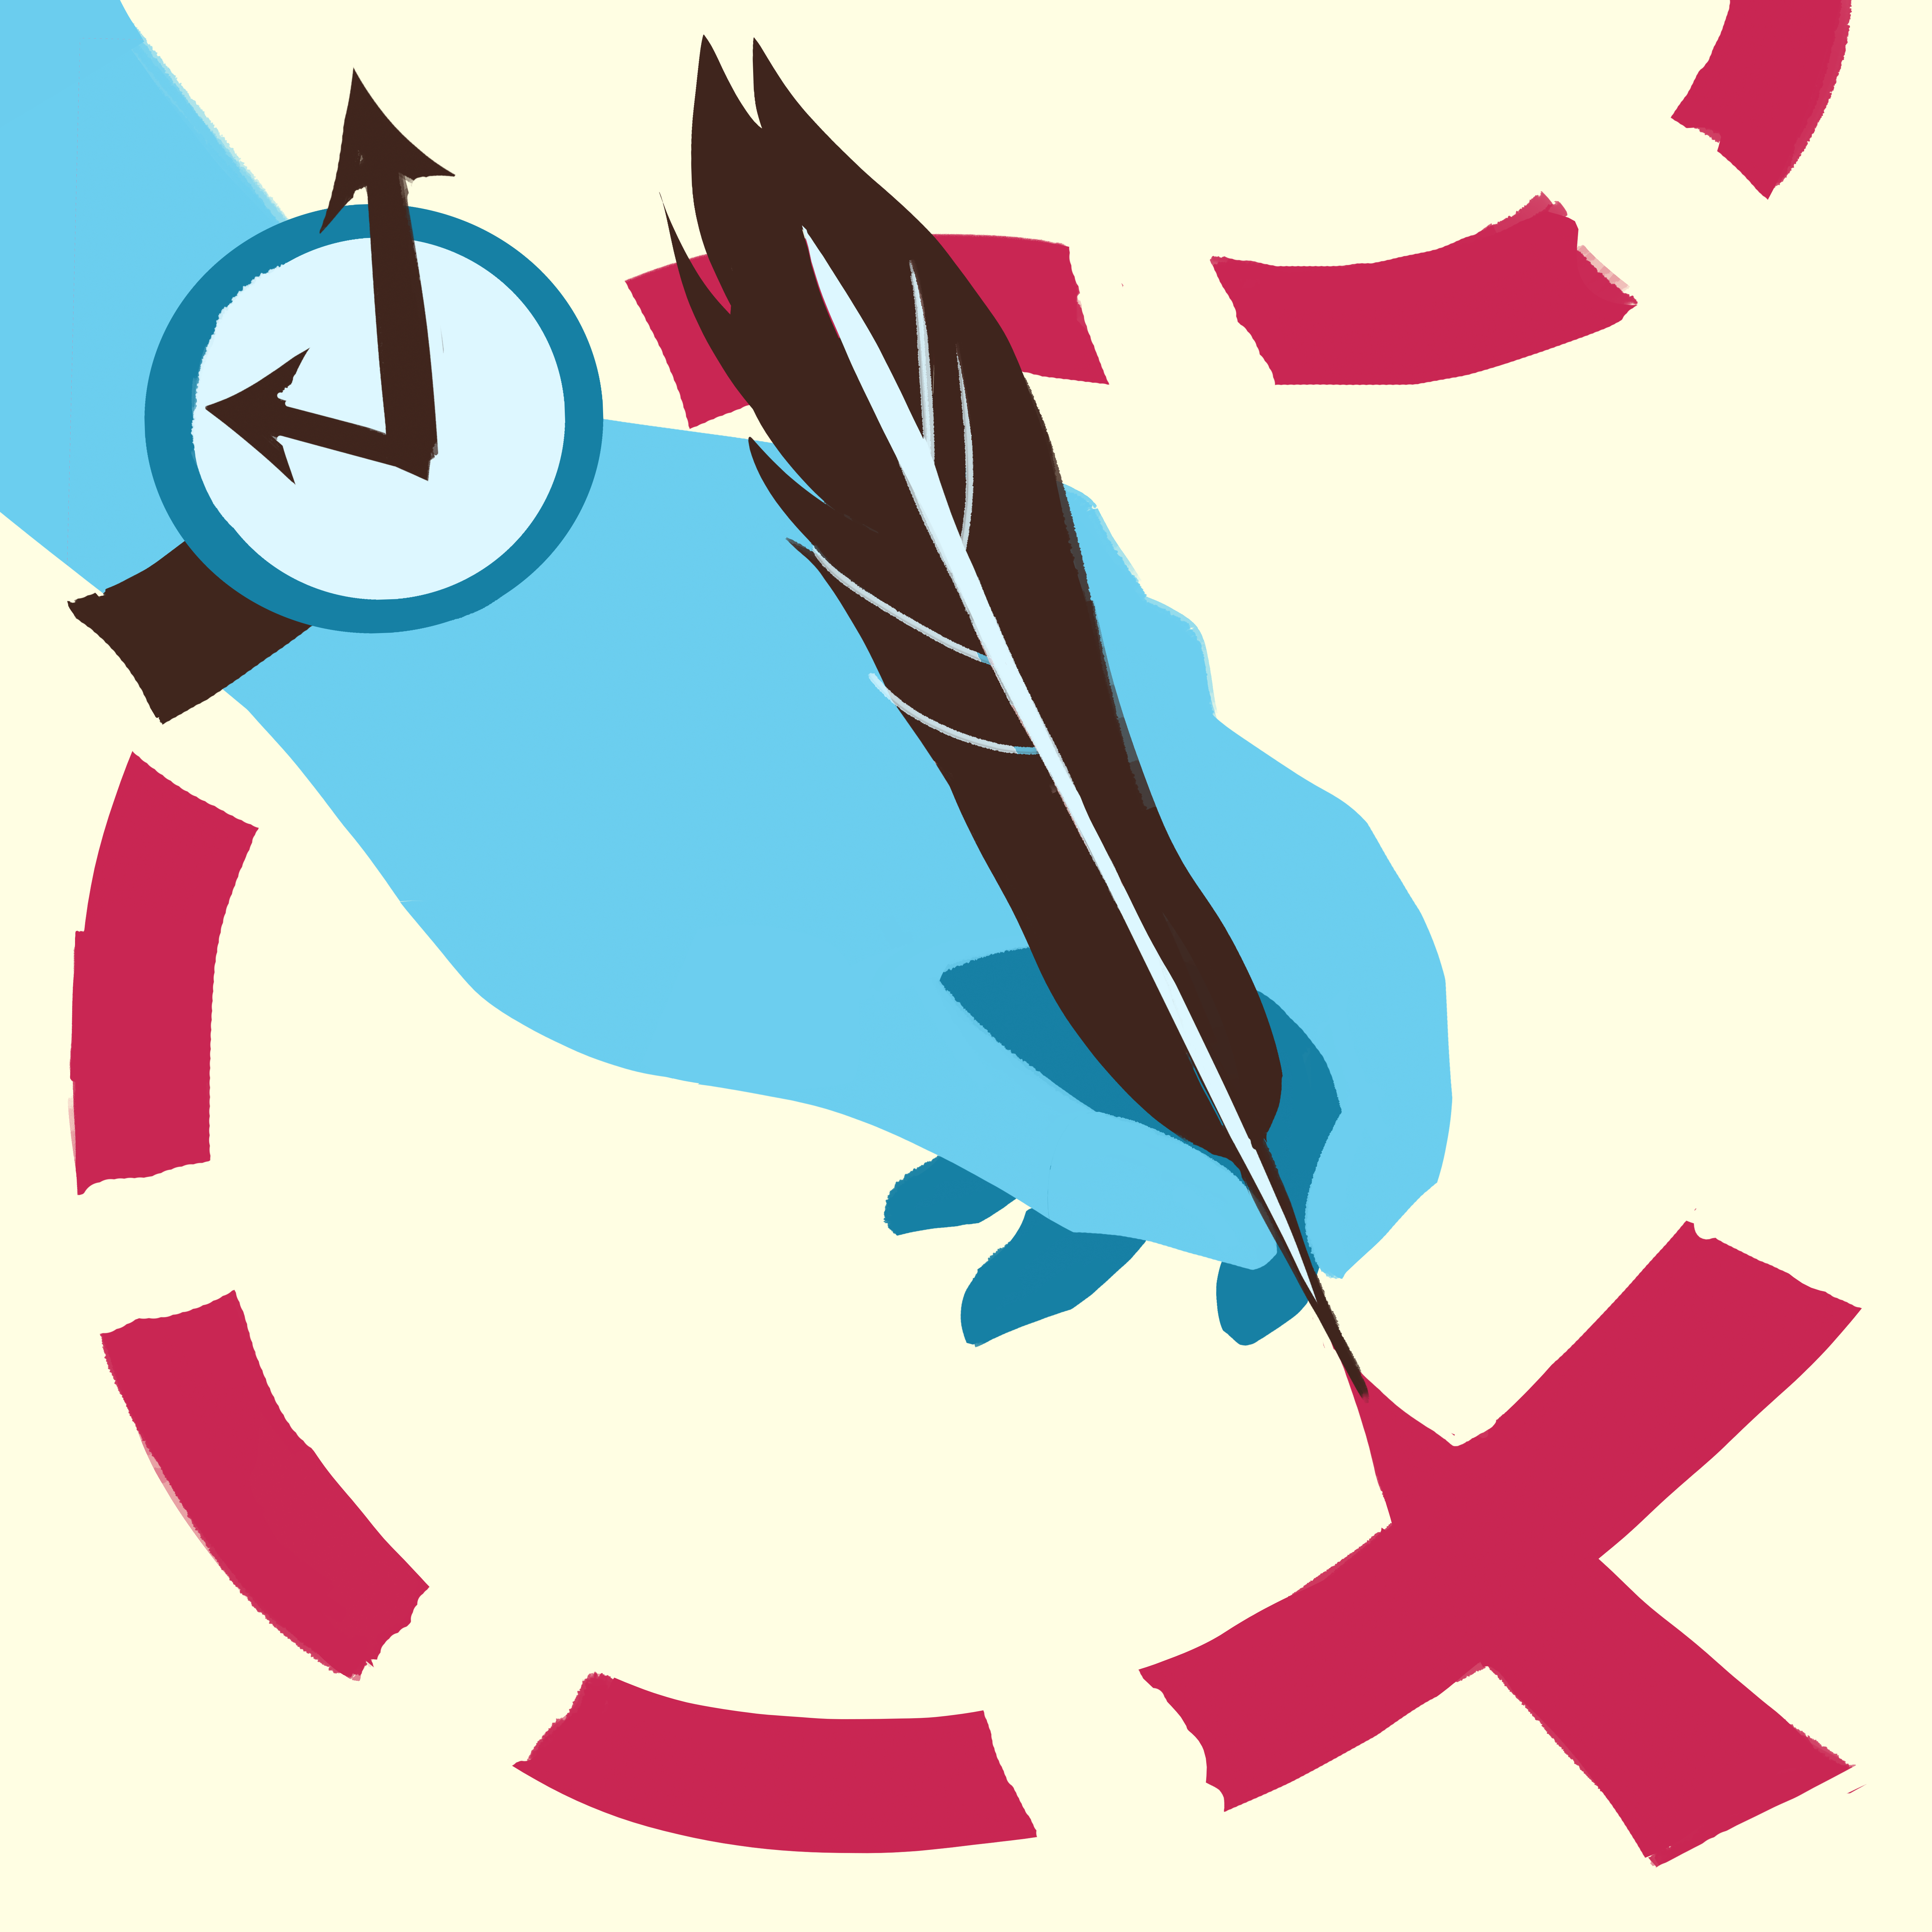 AS logo of a blue hand holding a feather quill, drawing a large red X. A broken up line lead to the X, like a treasure map. The hand is also wearing a wacky watch.